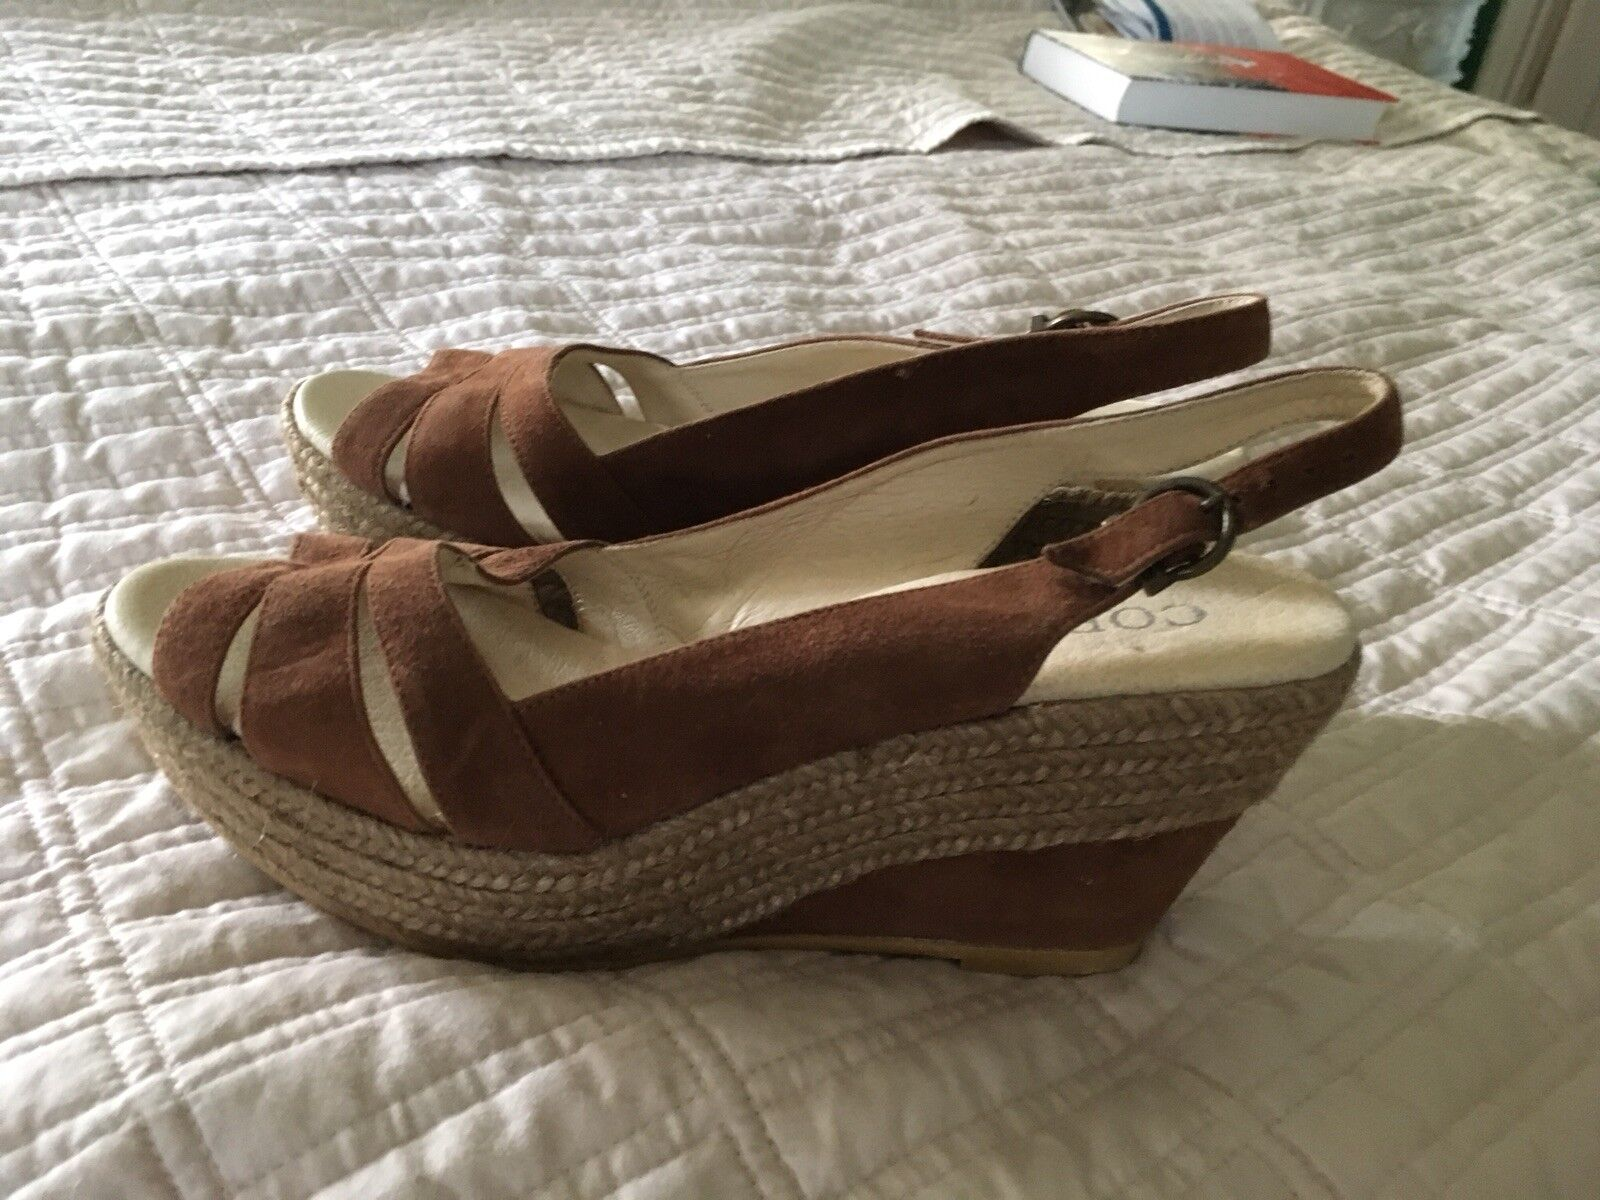 CORDANI Wedge Espadrille Suede Sandals Size 38 NEW